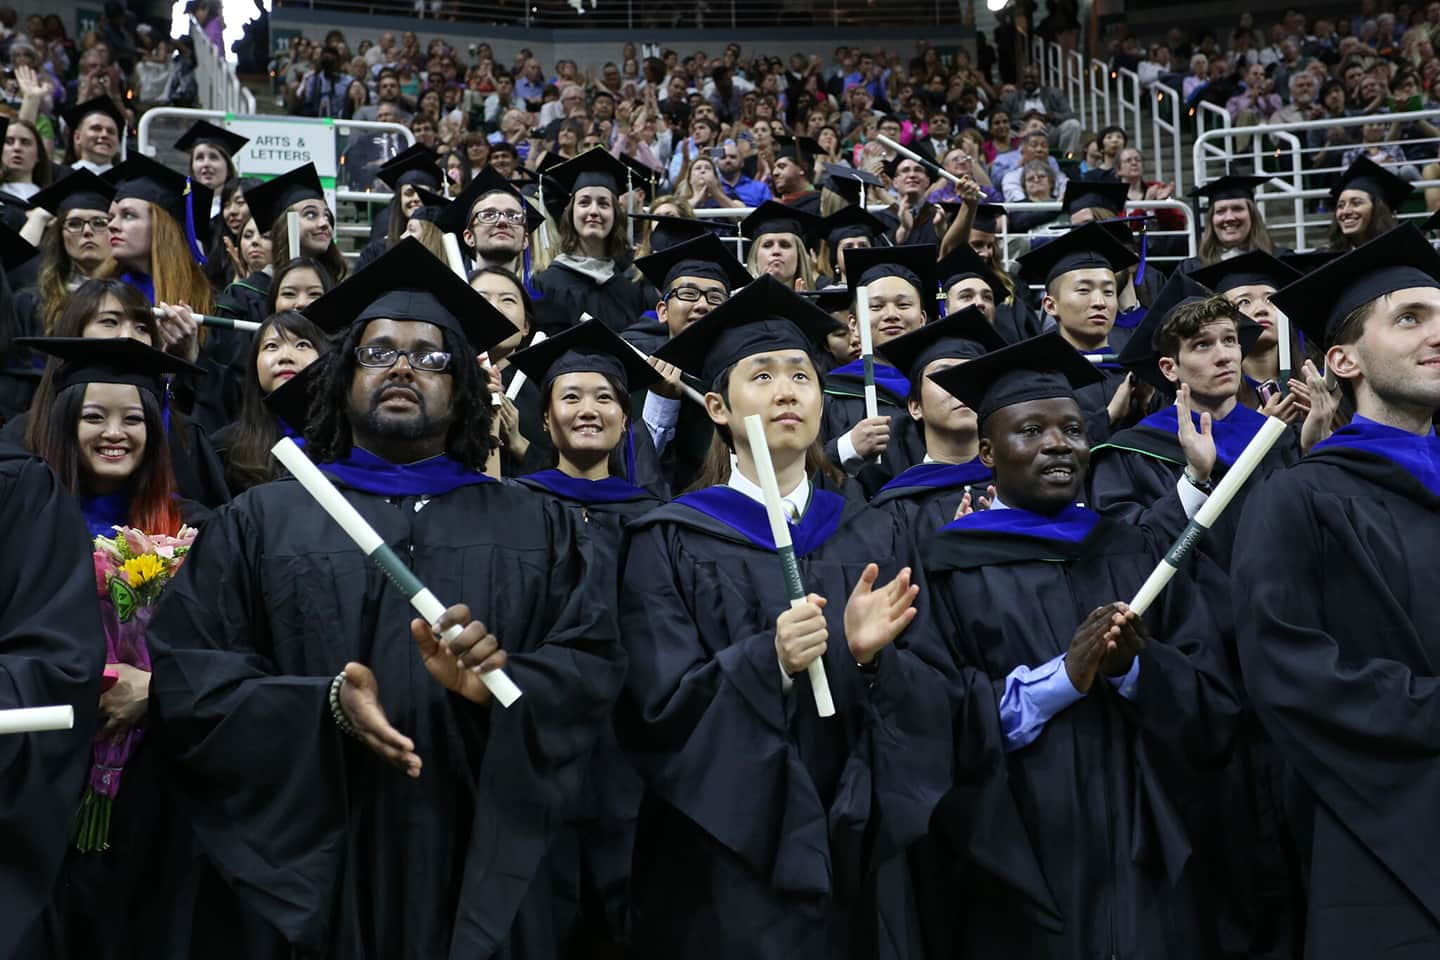 Graduate students at their graduation ceremony